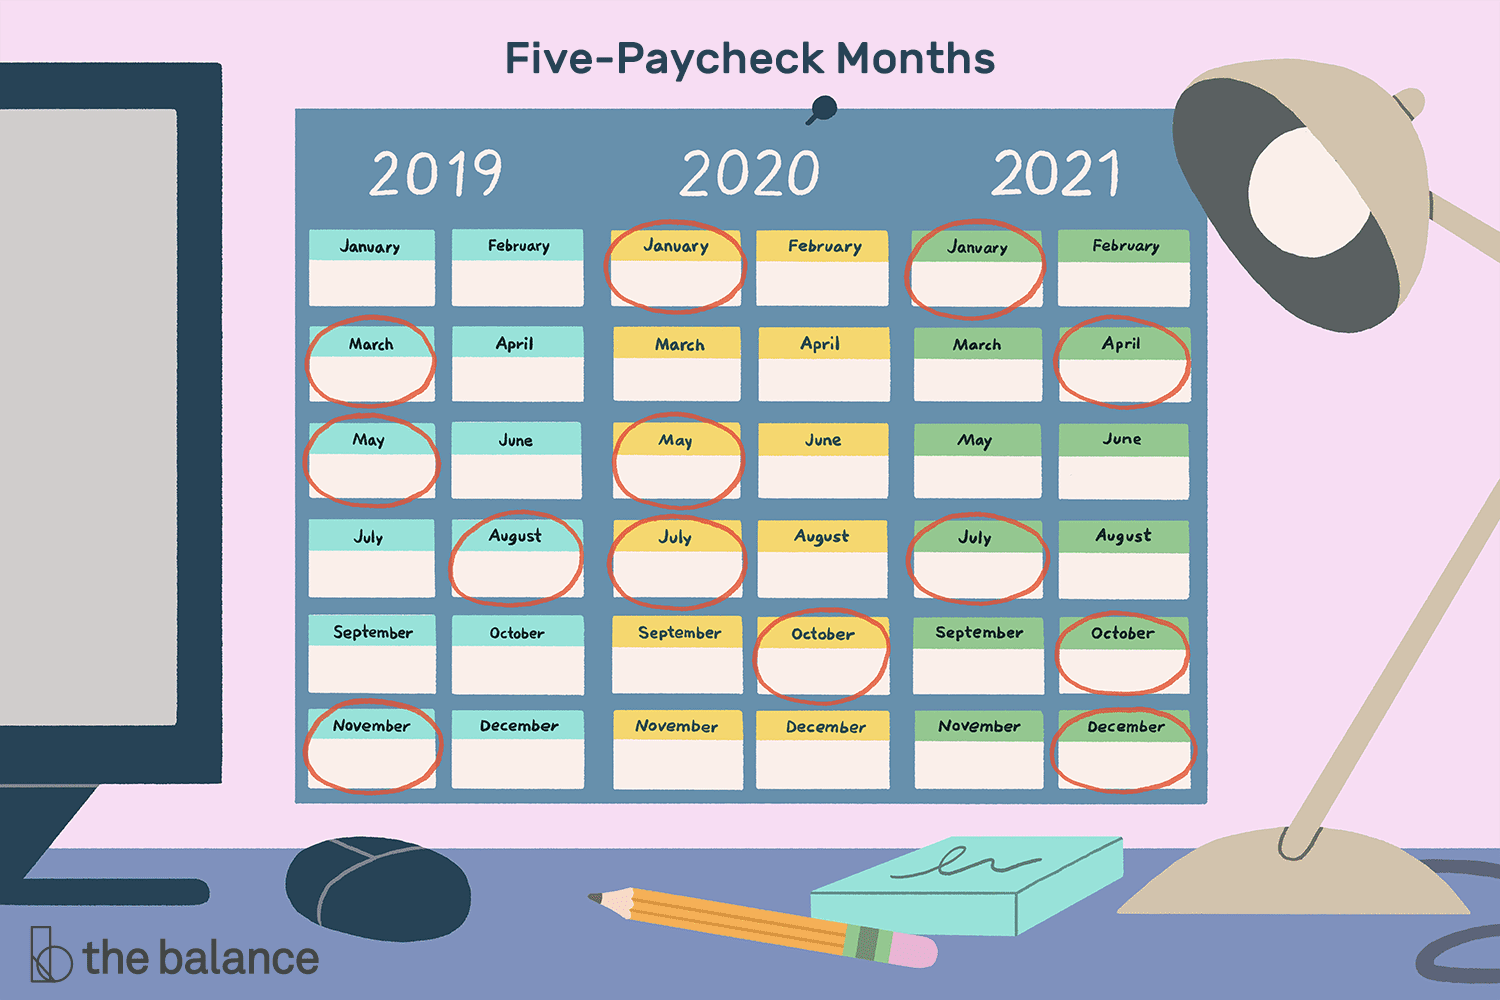 Months In Which You Receive 5 Paychecks From 2021 2029